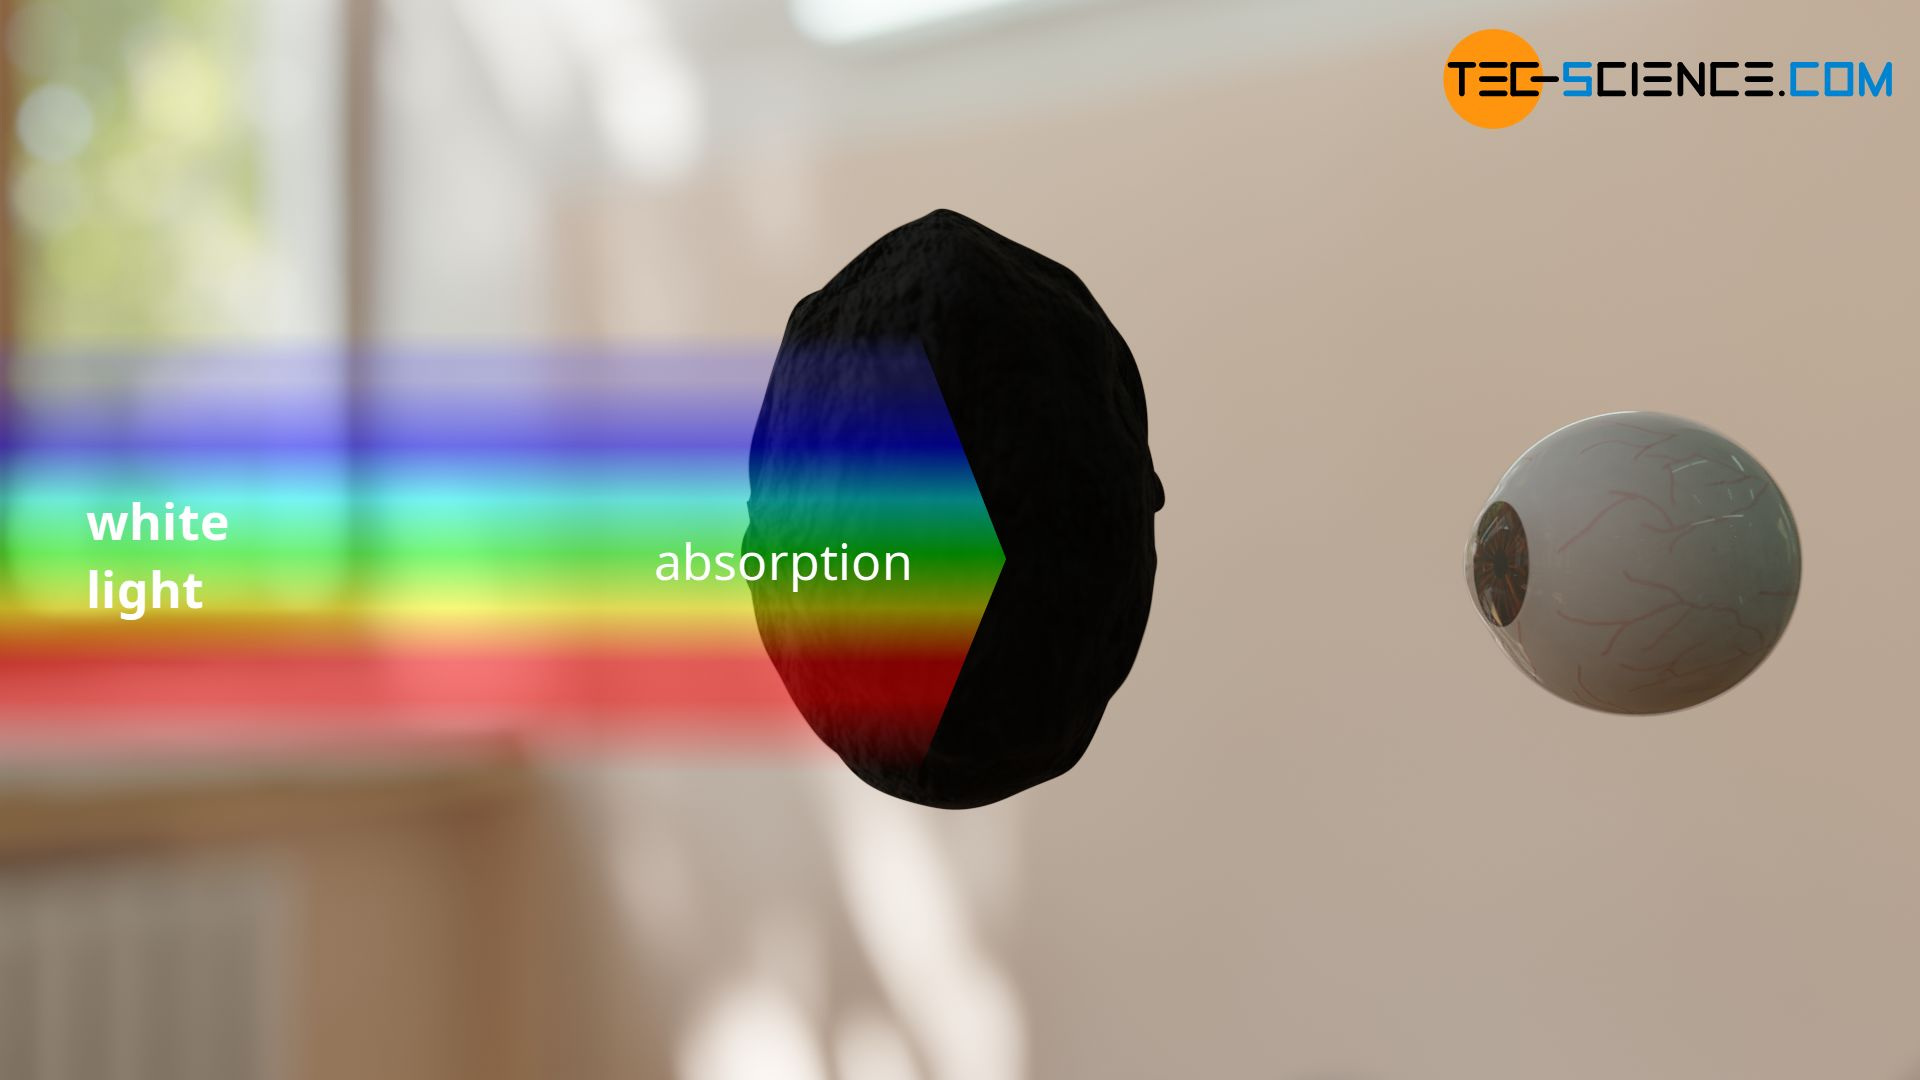 Color vision of a black object